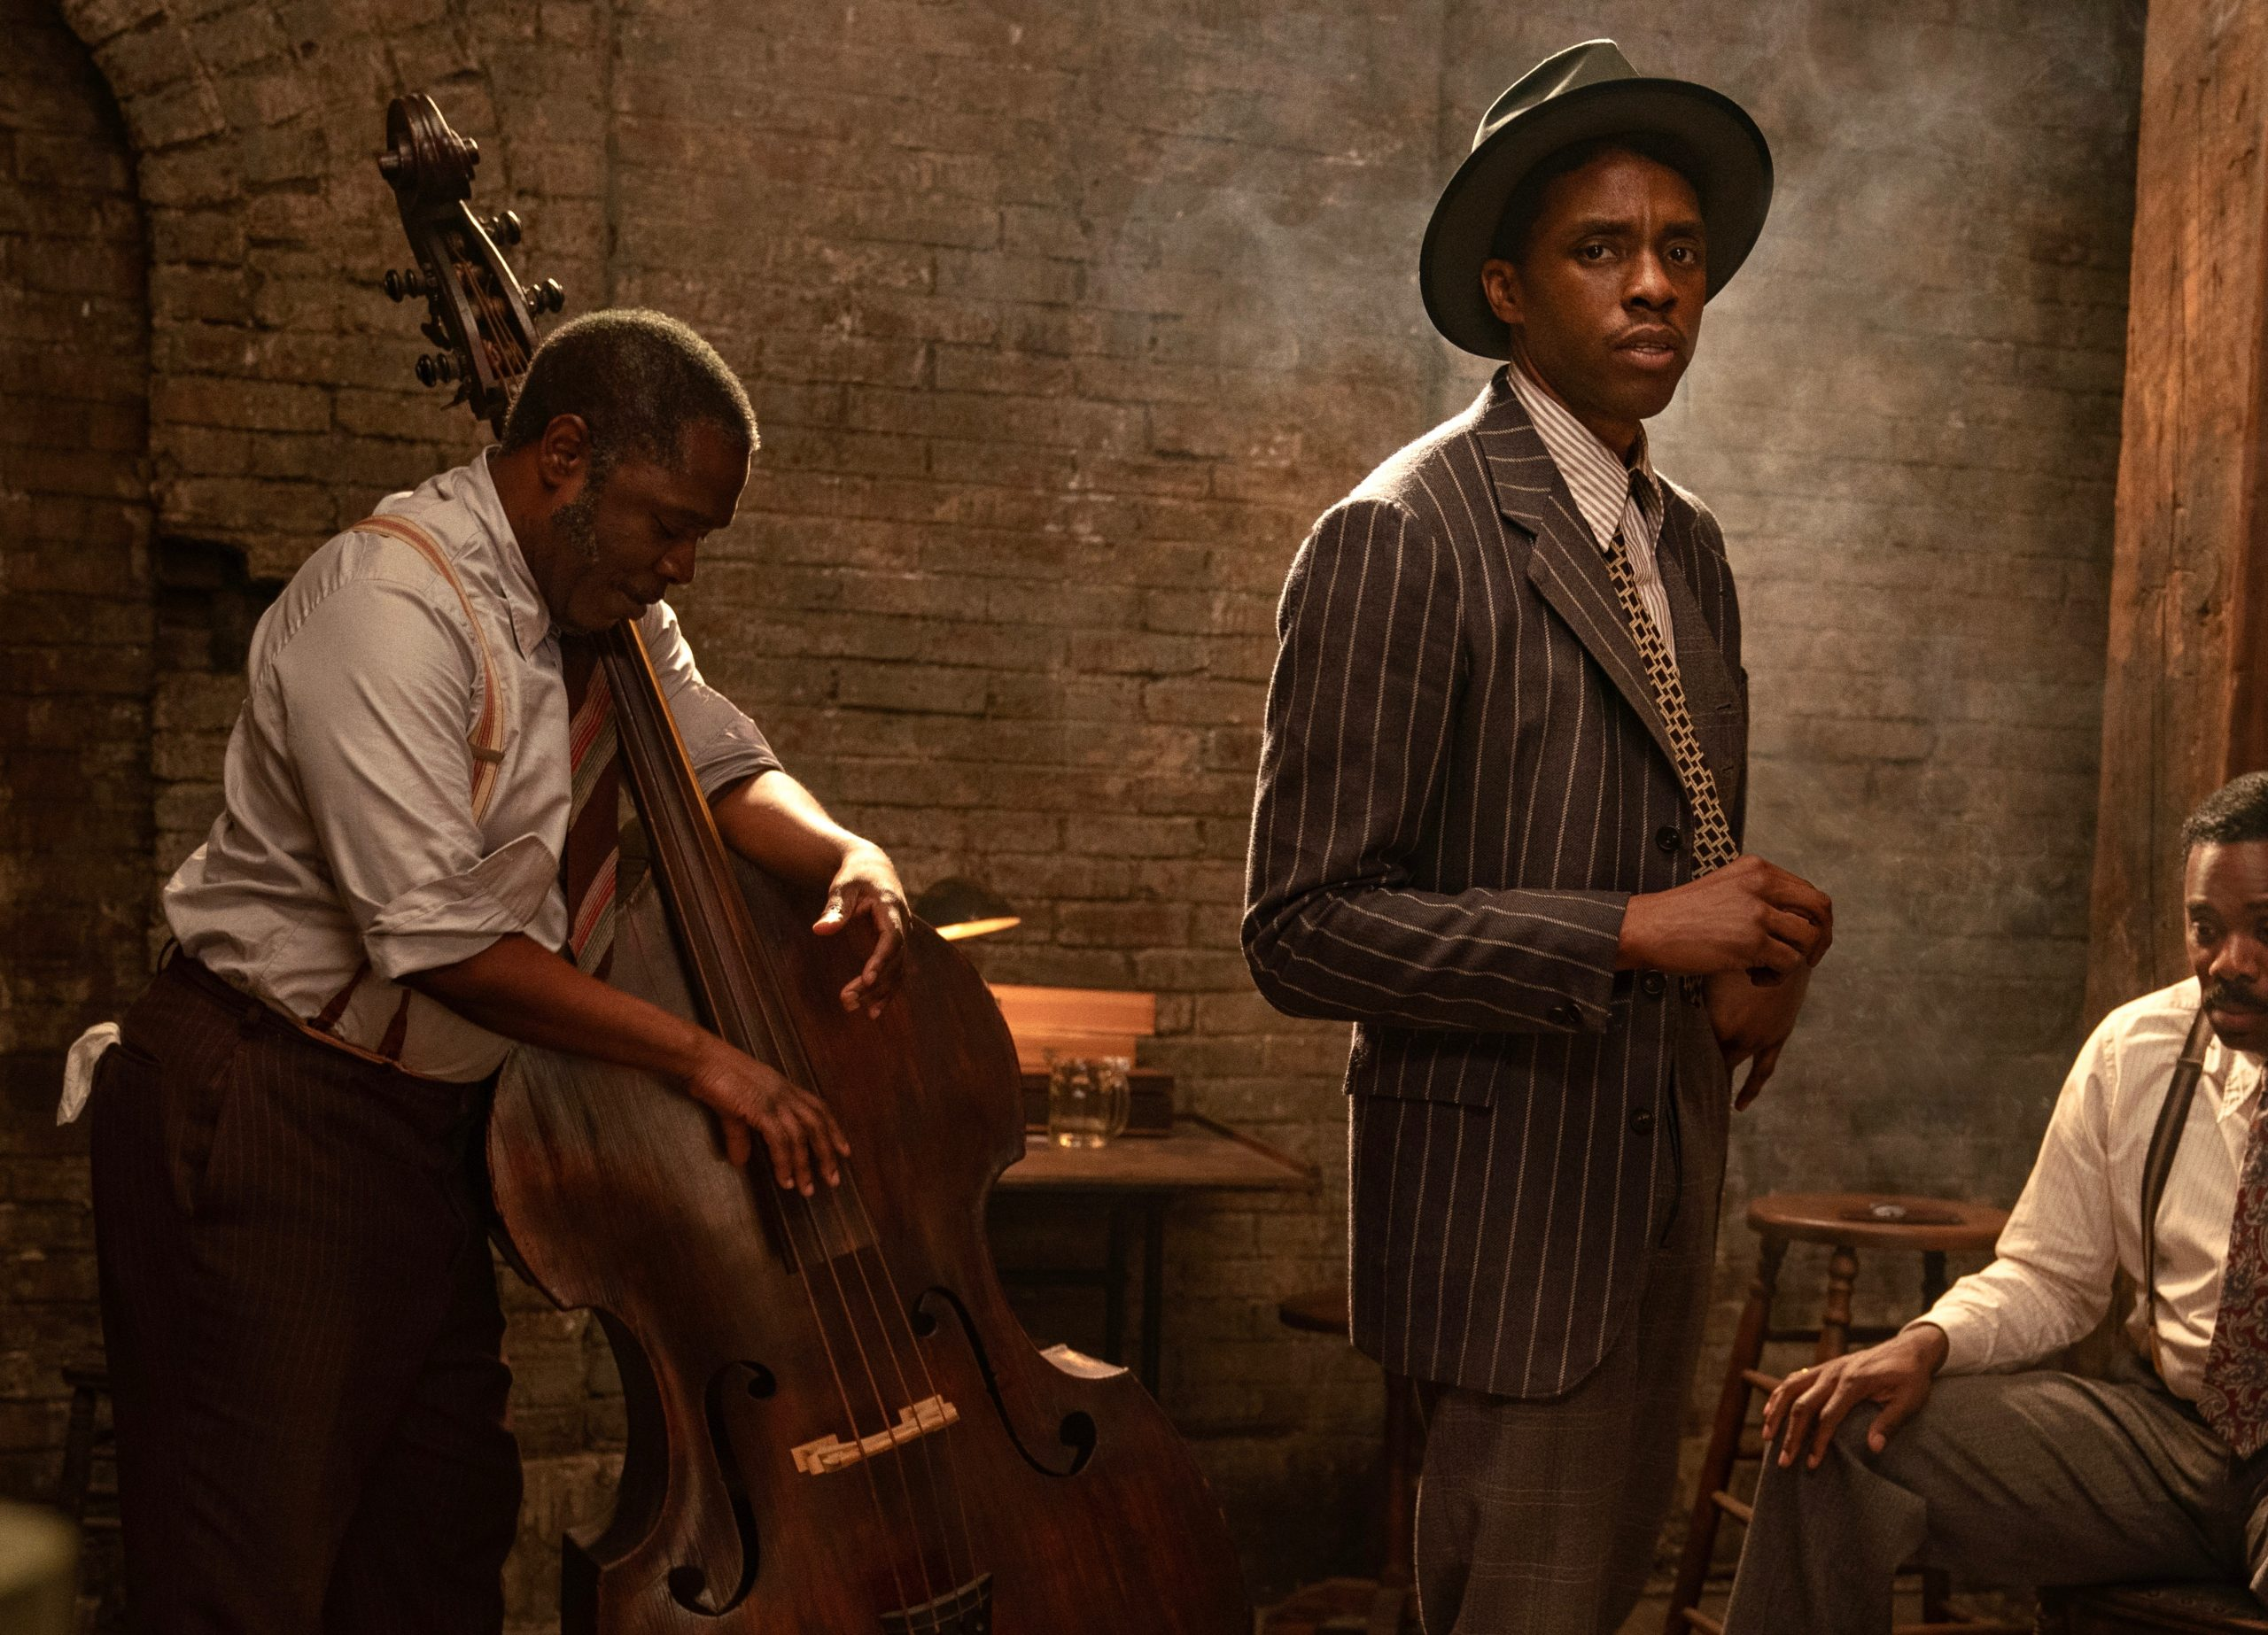 Critics have hailed Chadwick Boseman's fiery but nuanced performance as Levee, the scrappy young dude shown here in fashion-forward pinstripes. His bandmates in 'Ma Rainey's Black Bottom' include Michael Potts (L) as bass player Slow Drag and Colman Domingo as bandleader-trombonist Cutler. (photo: David Lee / Netflix)